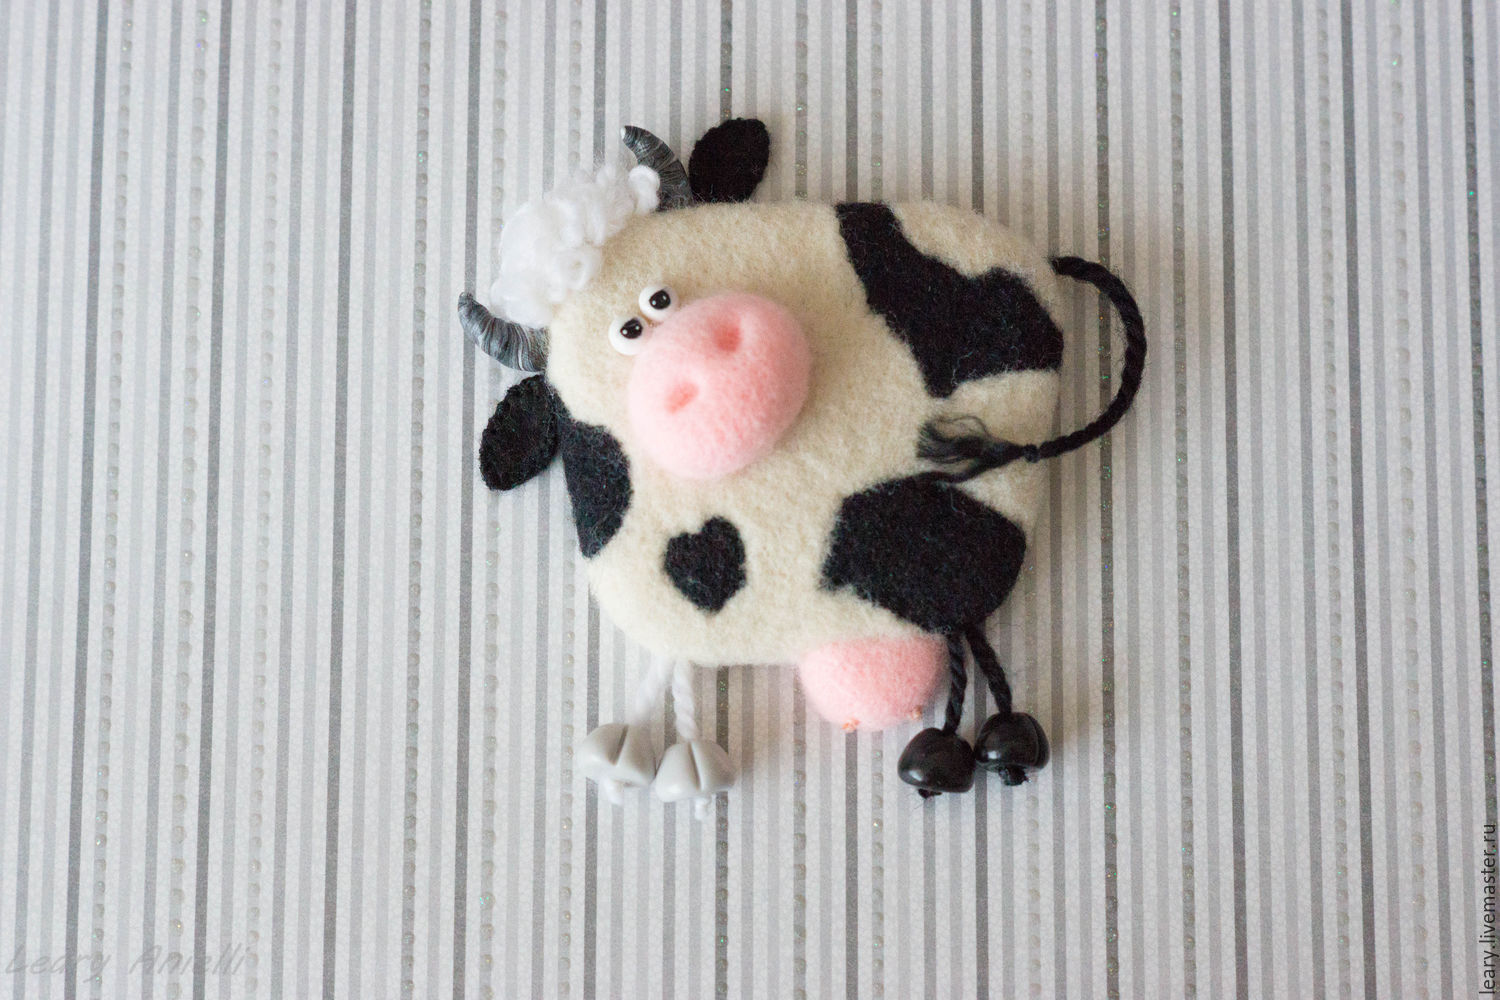 'Cow' felted wool fridge magnet, Magnets, Omsk,  Фото №1